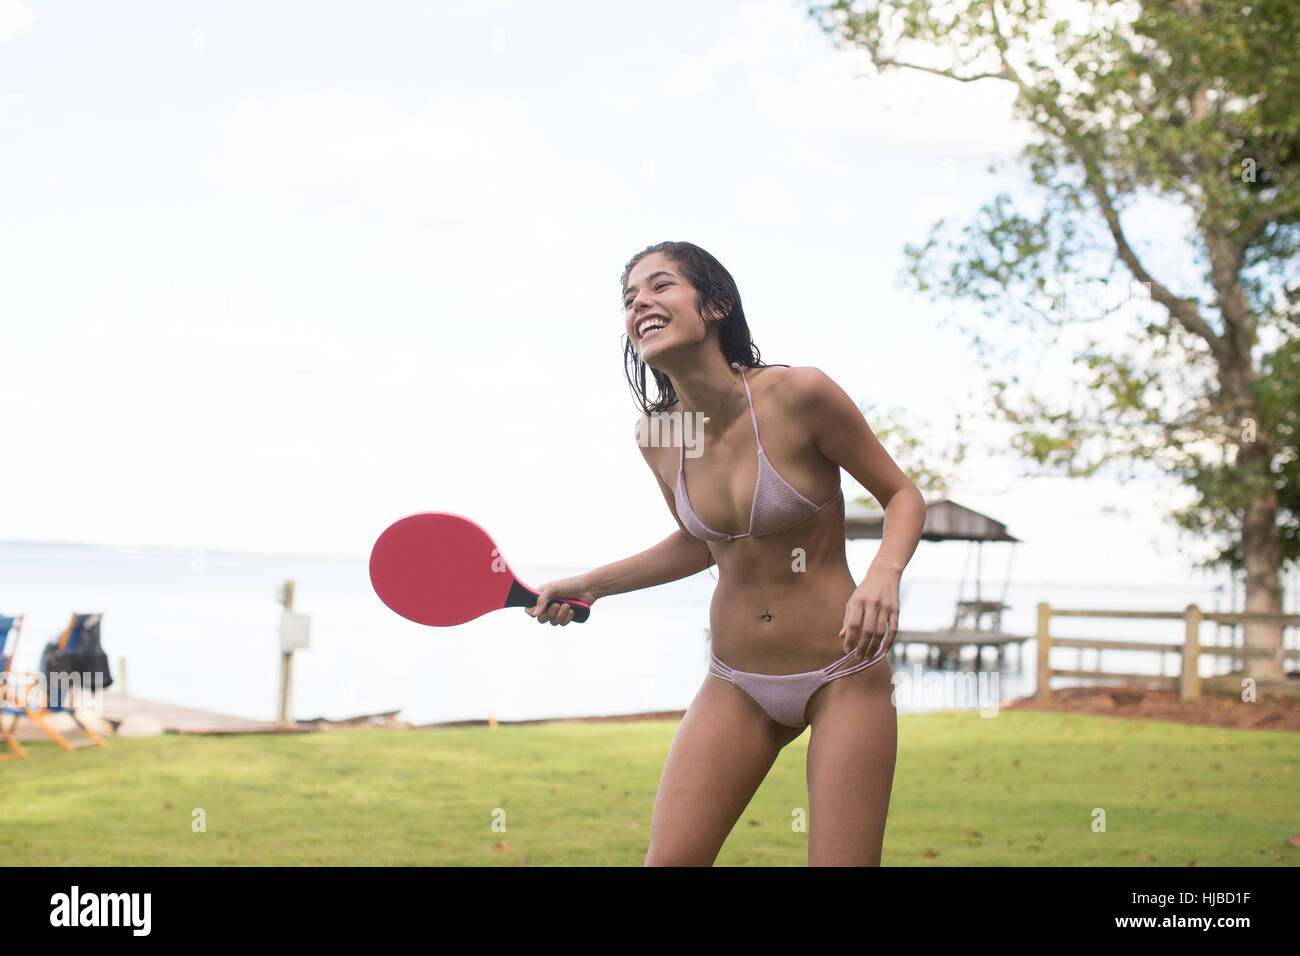 Young woman in bikini à jouer au tennis de table à l'autre, Santa Rosa Beach, Florida, USA Photo Stock